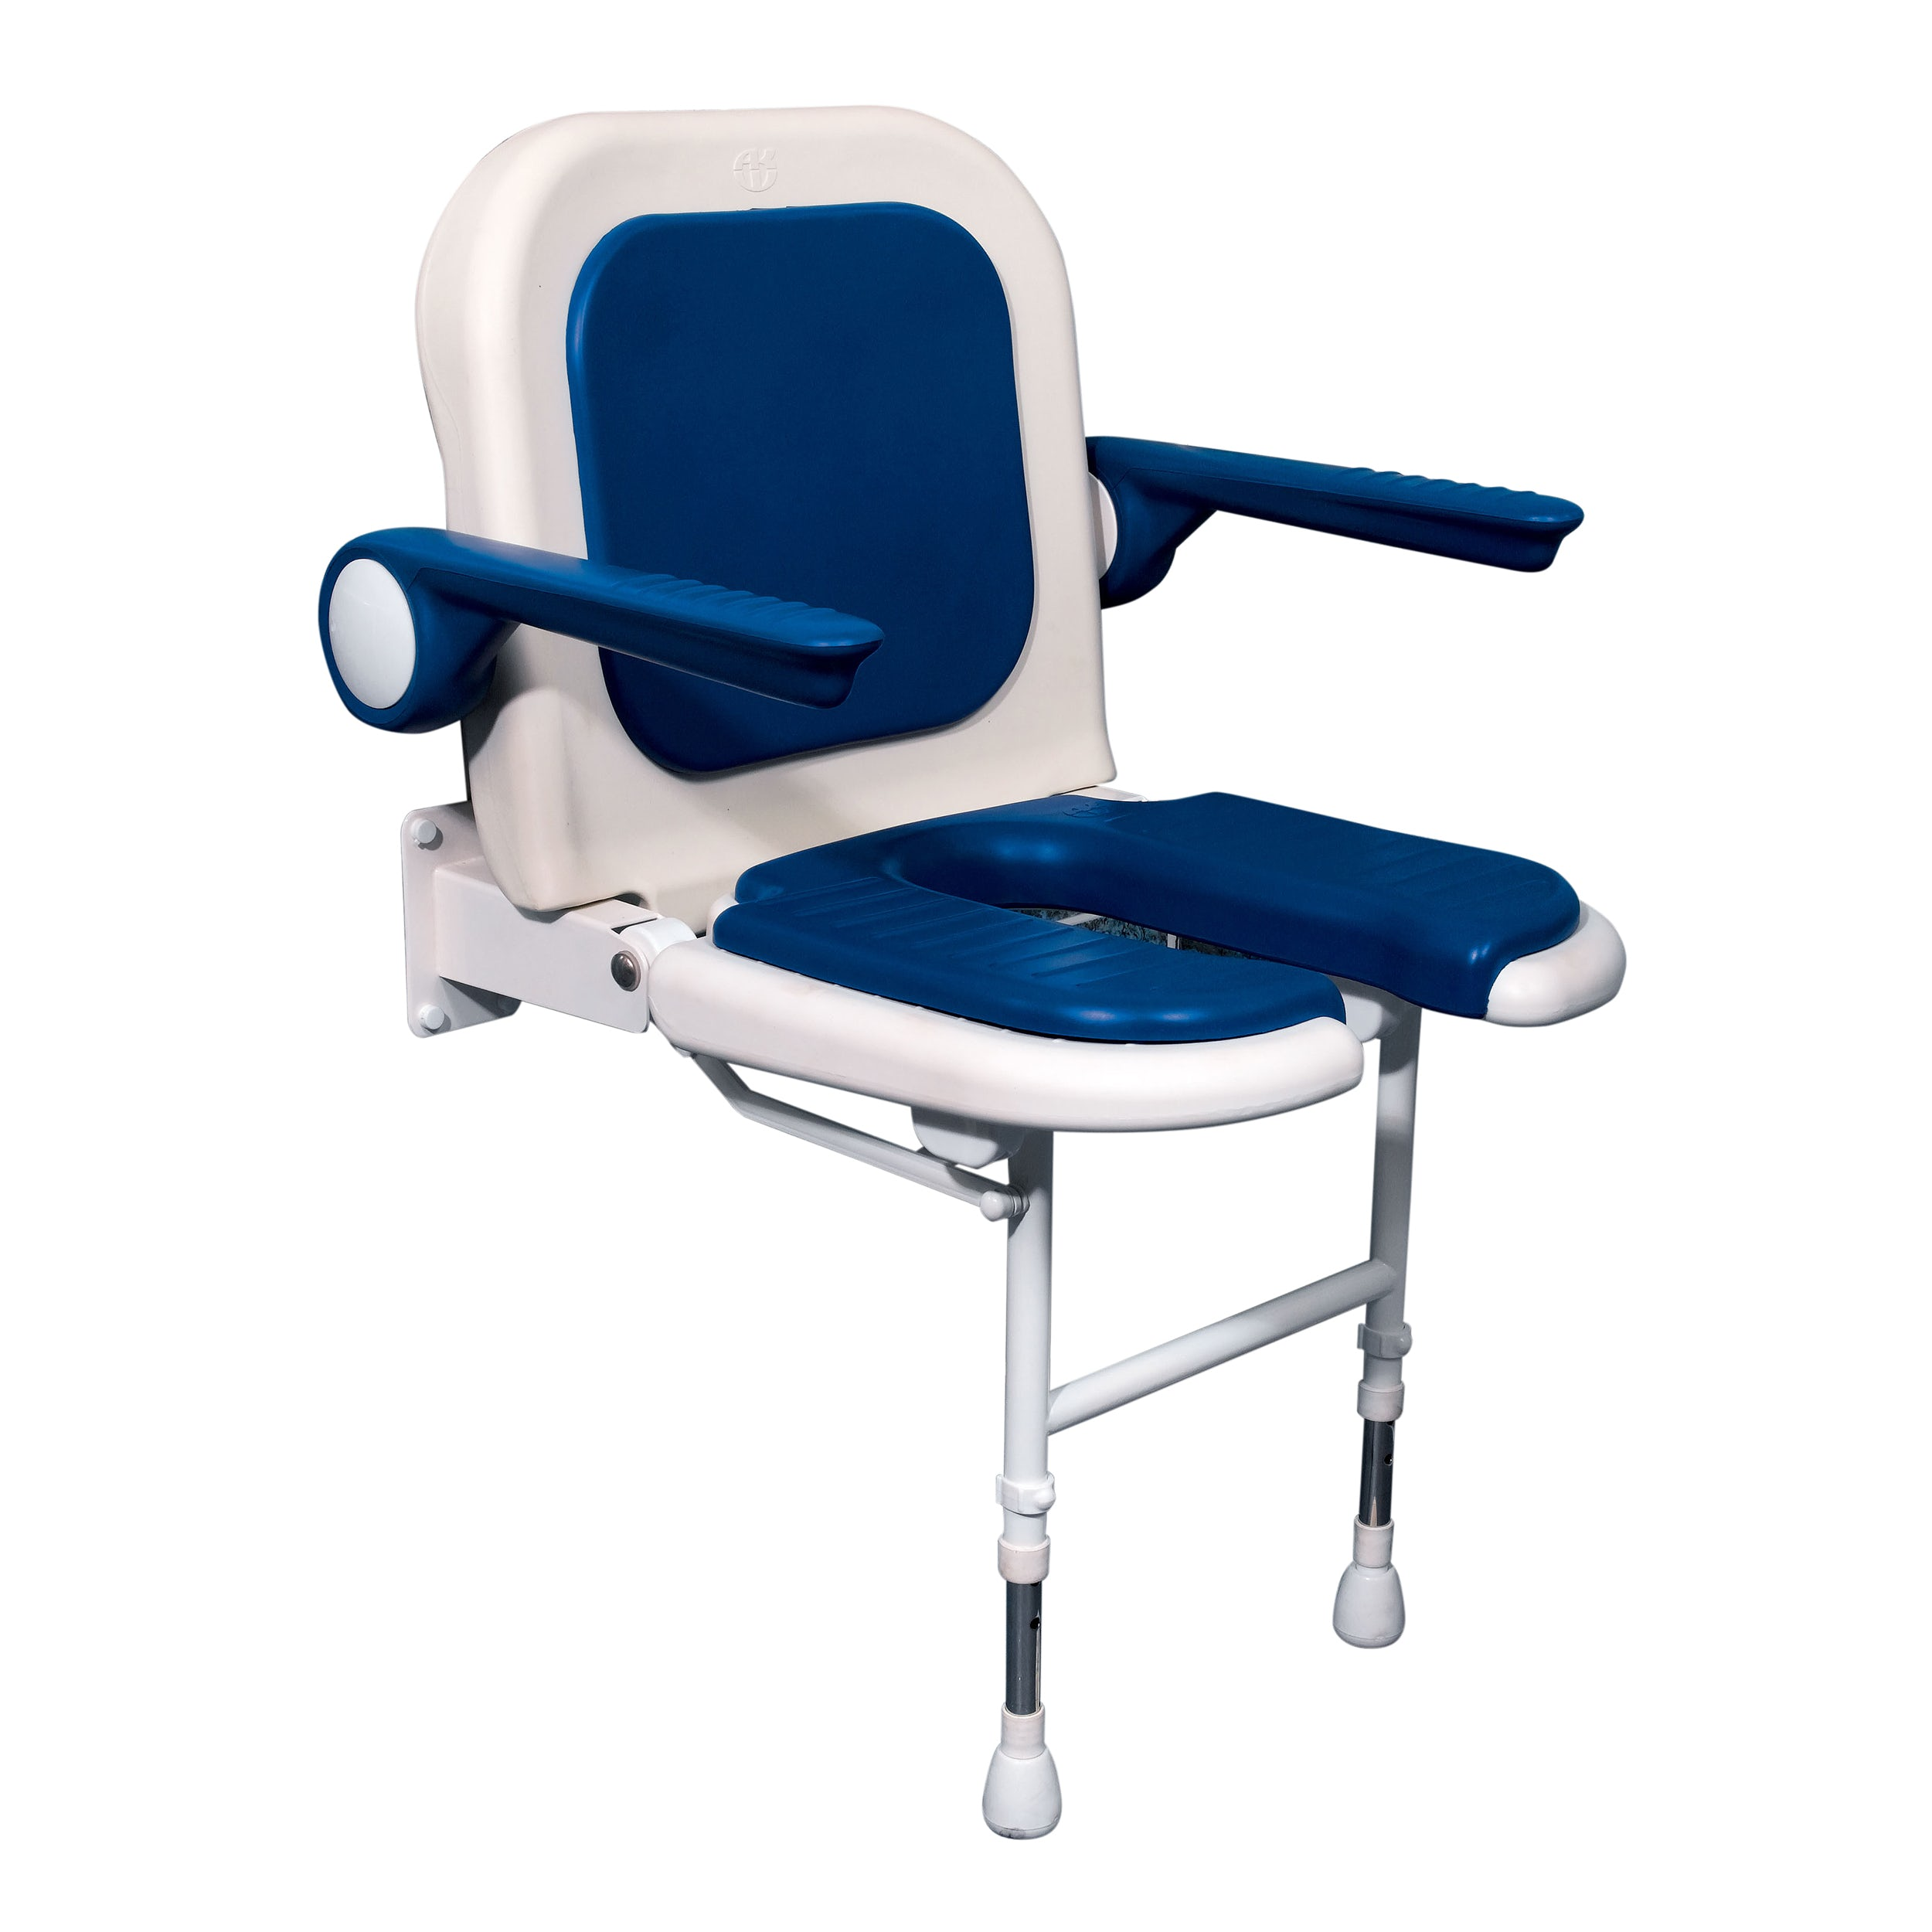 AKW Advanced folding shower seat with moulded seat and full